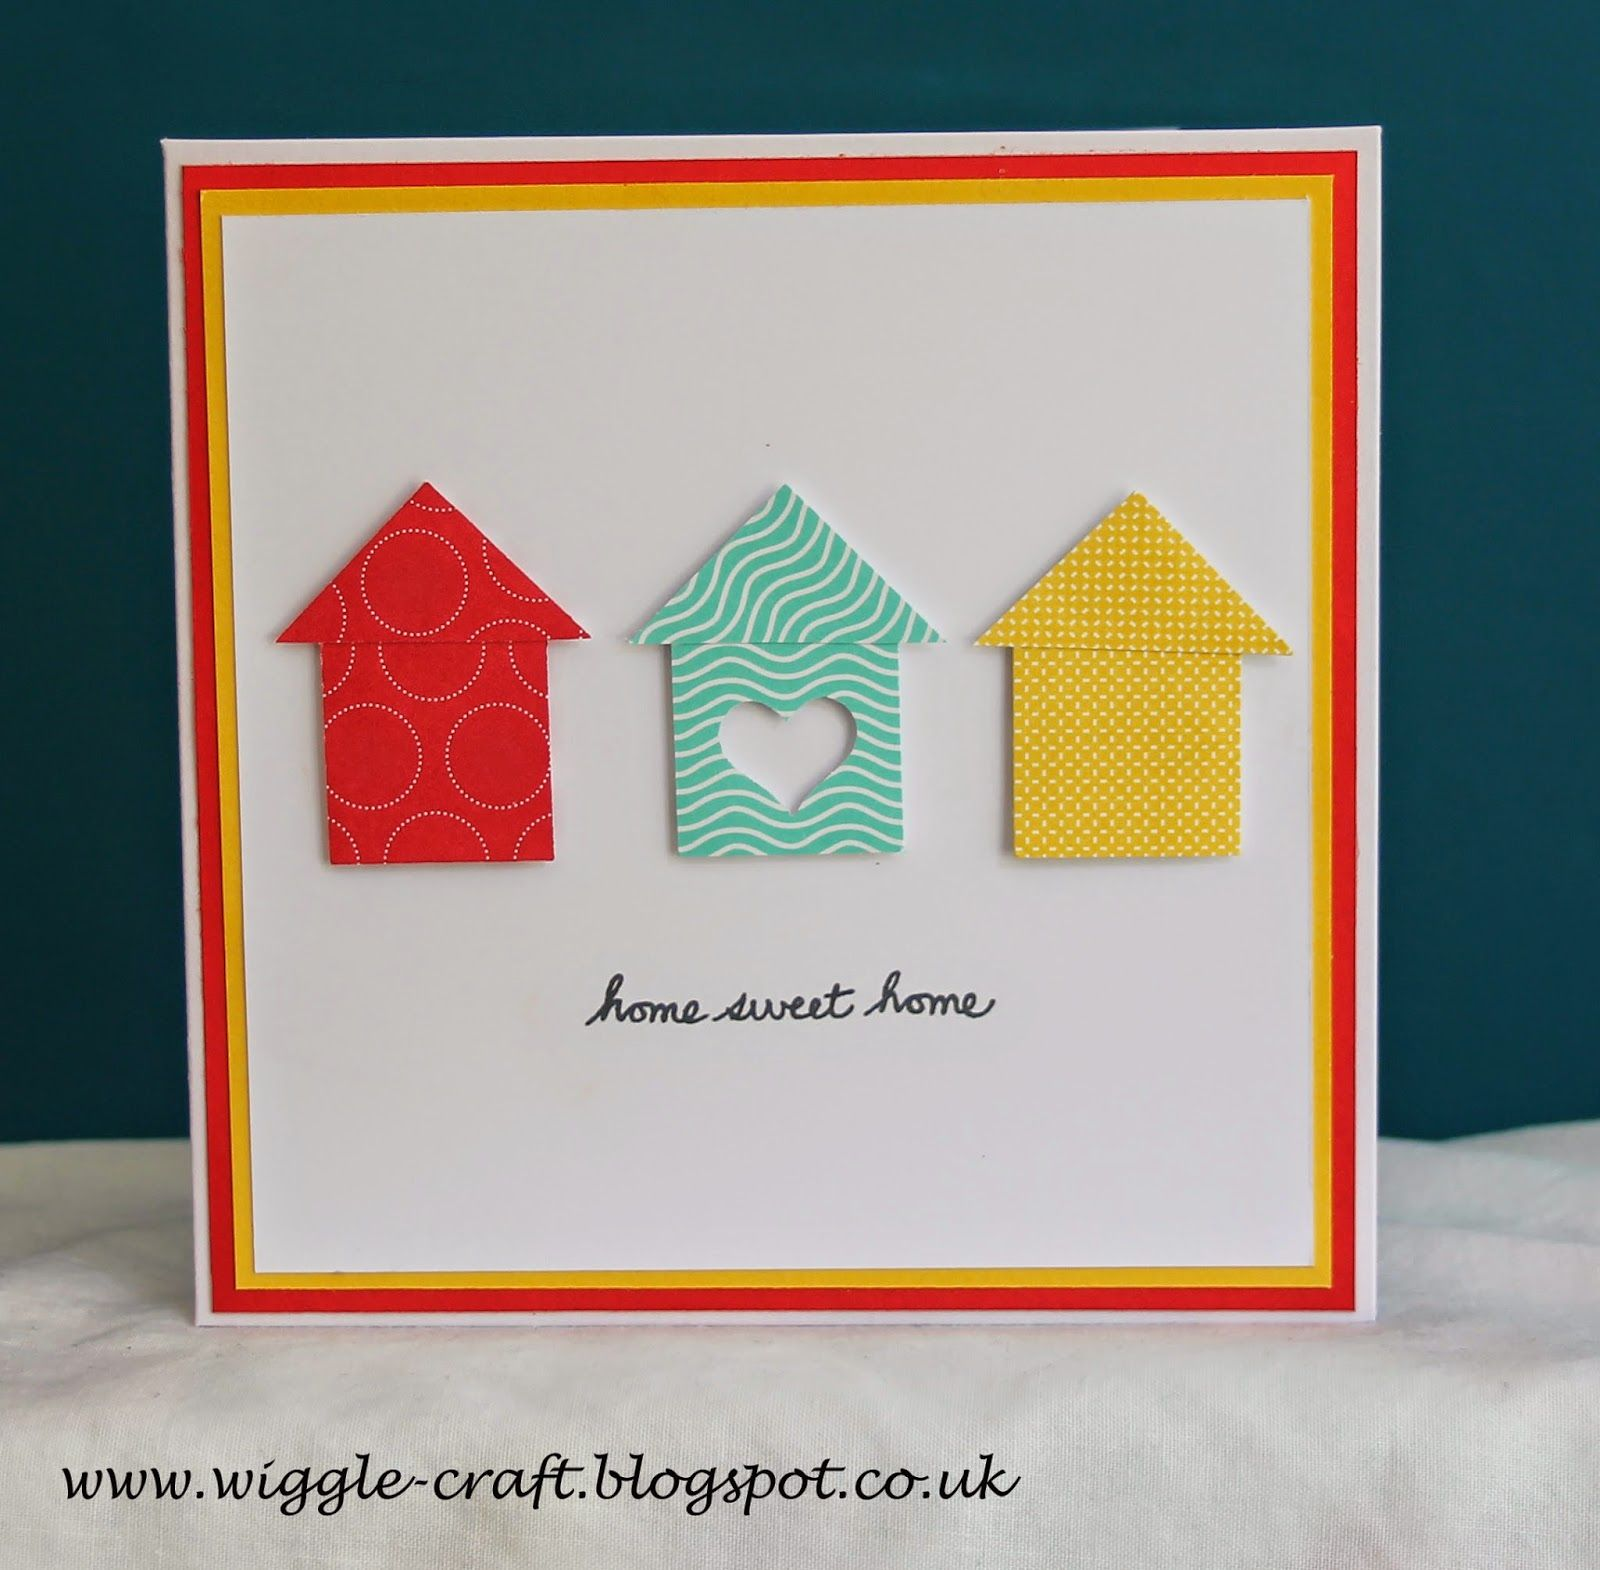 New Home Card Using Stampin' Up! Punches And Card. Punch